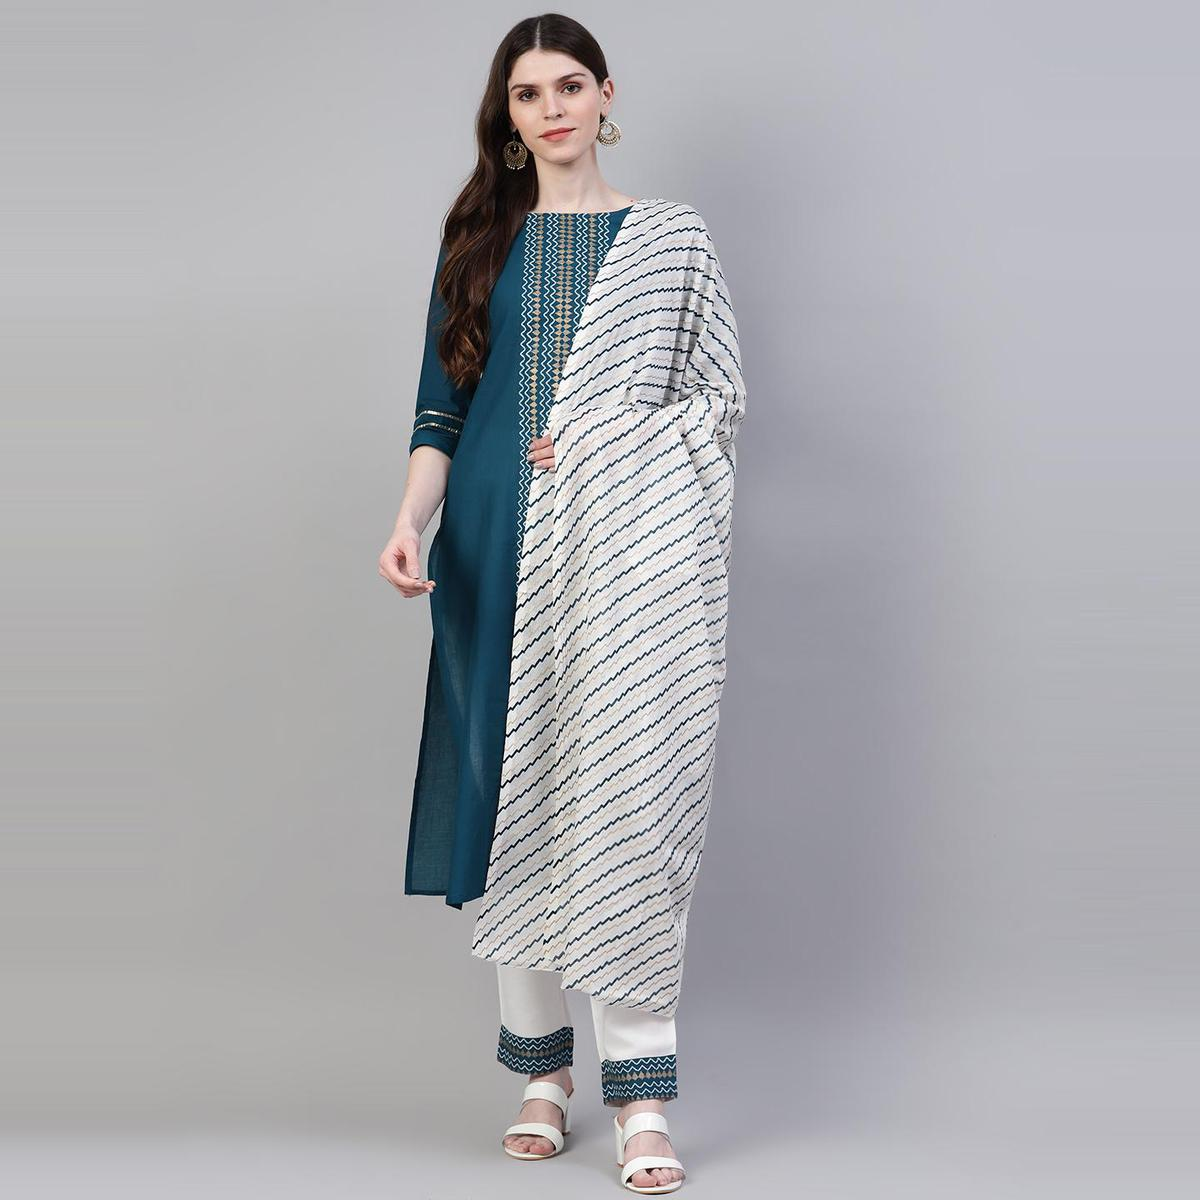 Excellent Teal Blue Colored Casual Wear Printed Cotton Kurti - Pant Set With Dupatta